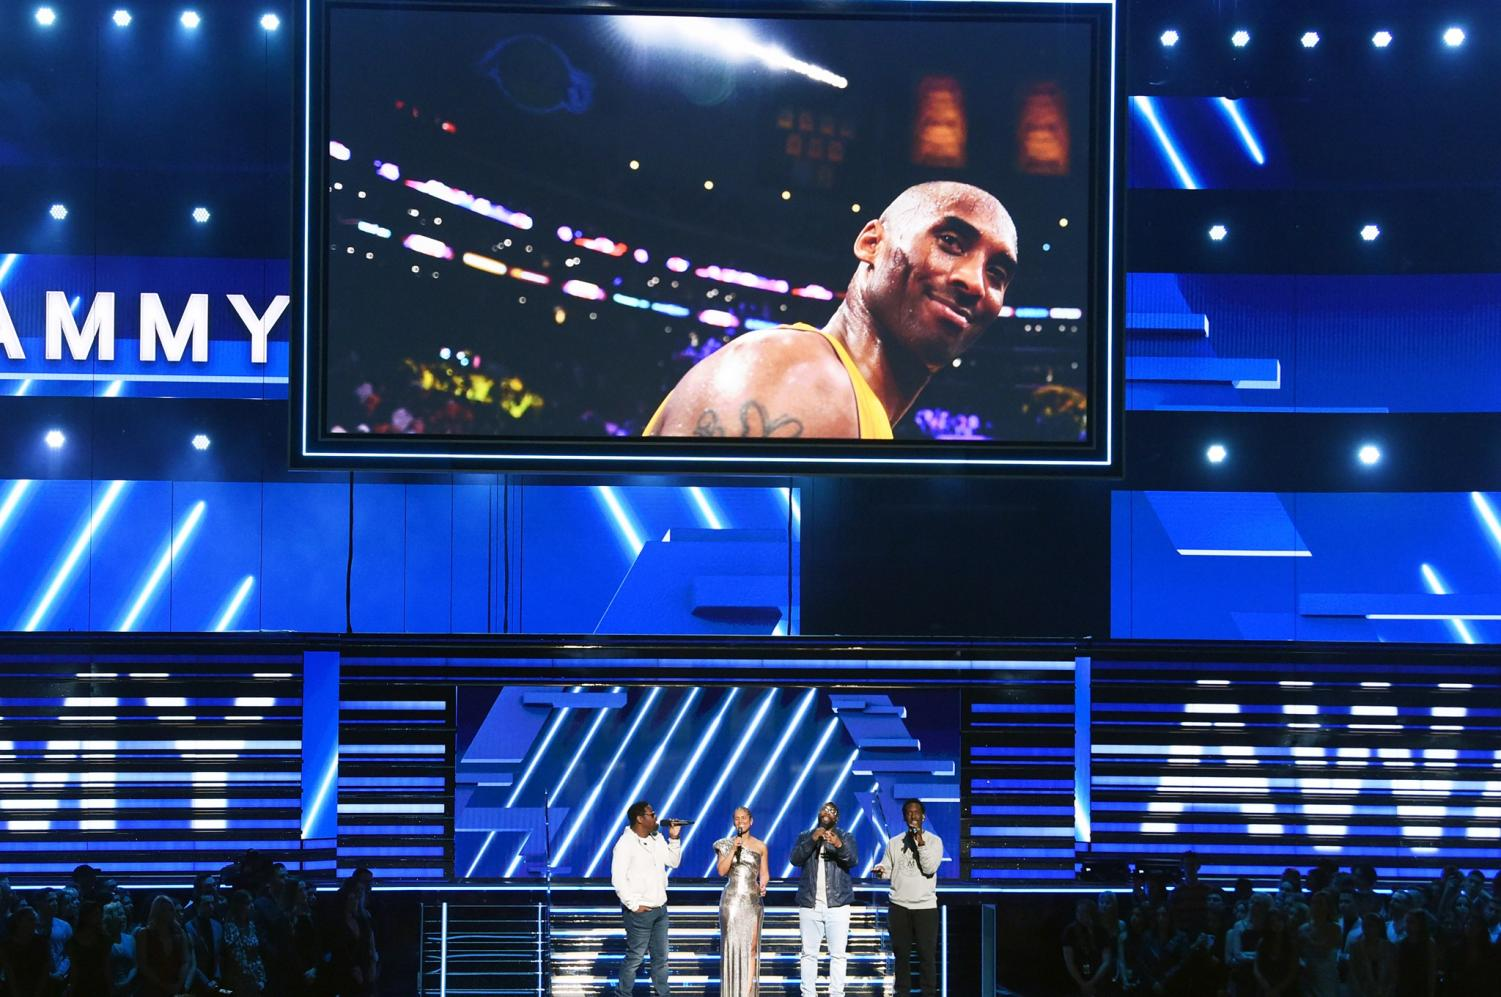 Alicia Keys and Boyz II Men began the night with a tear-jerking tribute to the late Kobe Bryant.